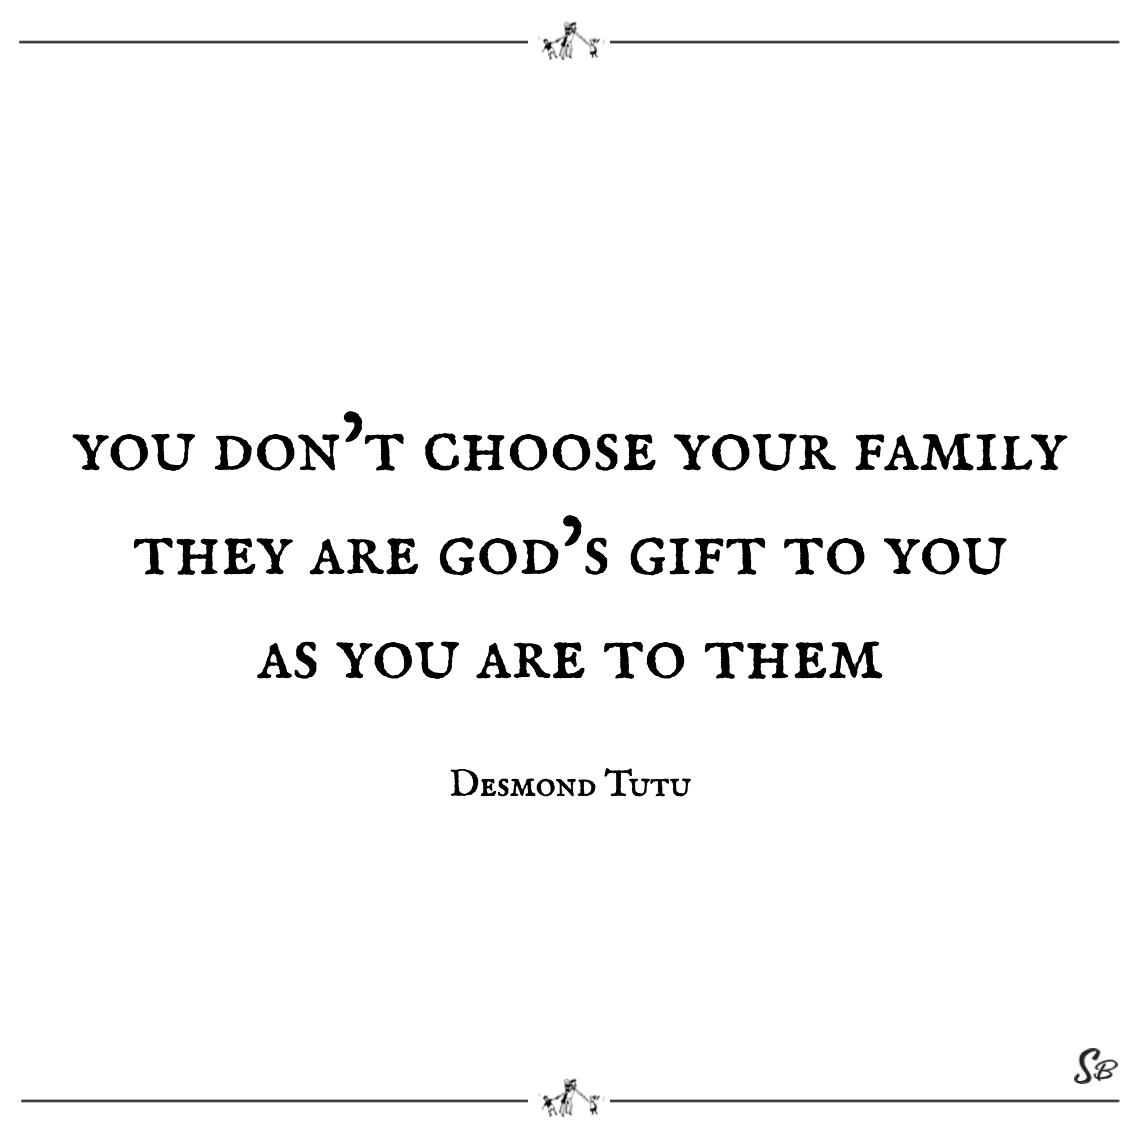 You don't choose your family they are god's gift to you as you are to them desmond tutu - family quotes